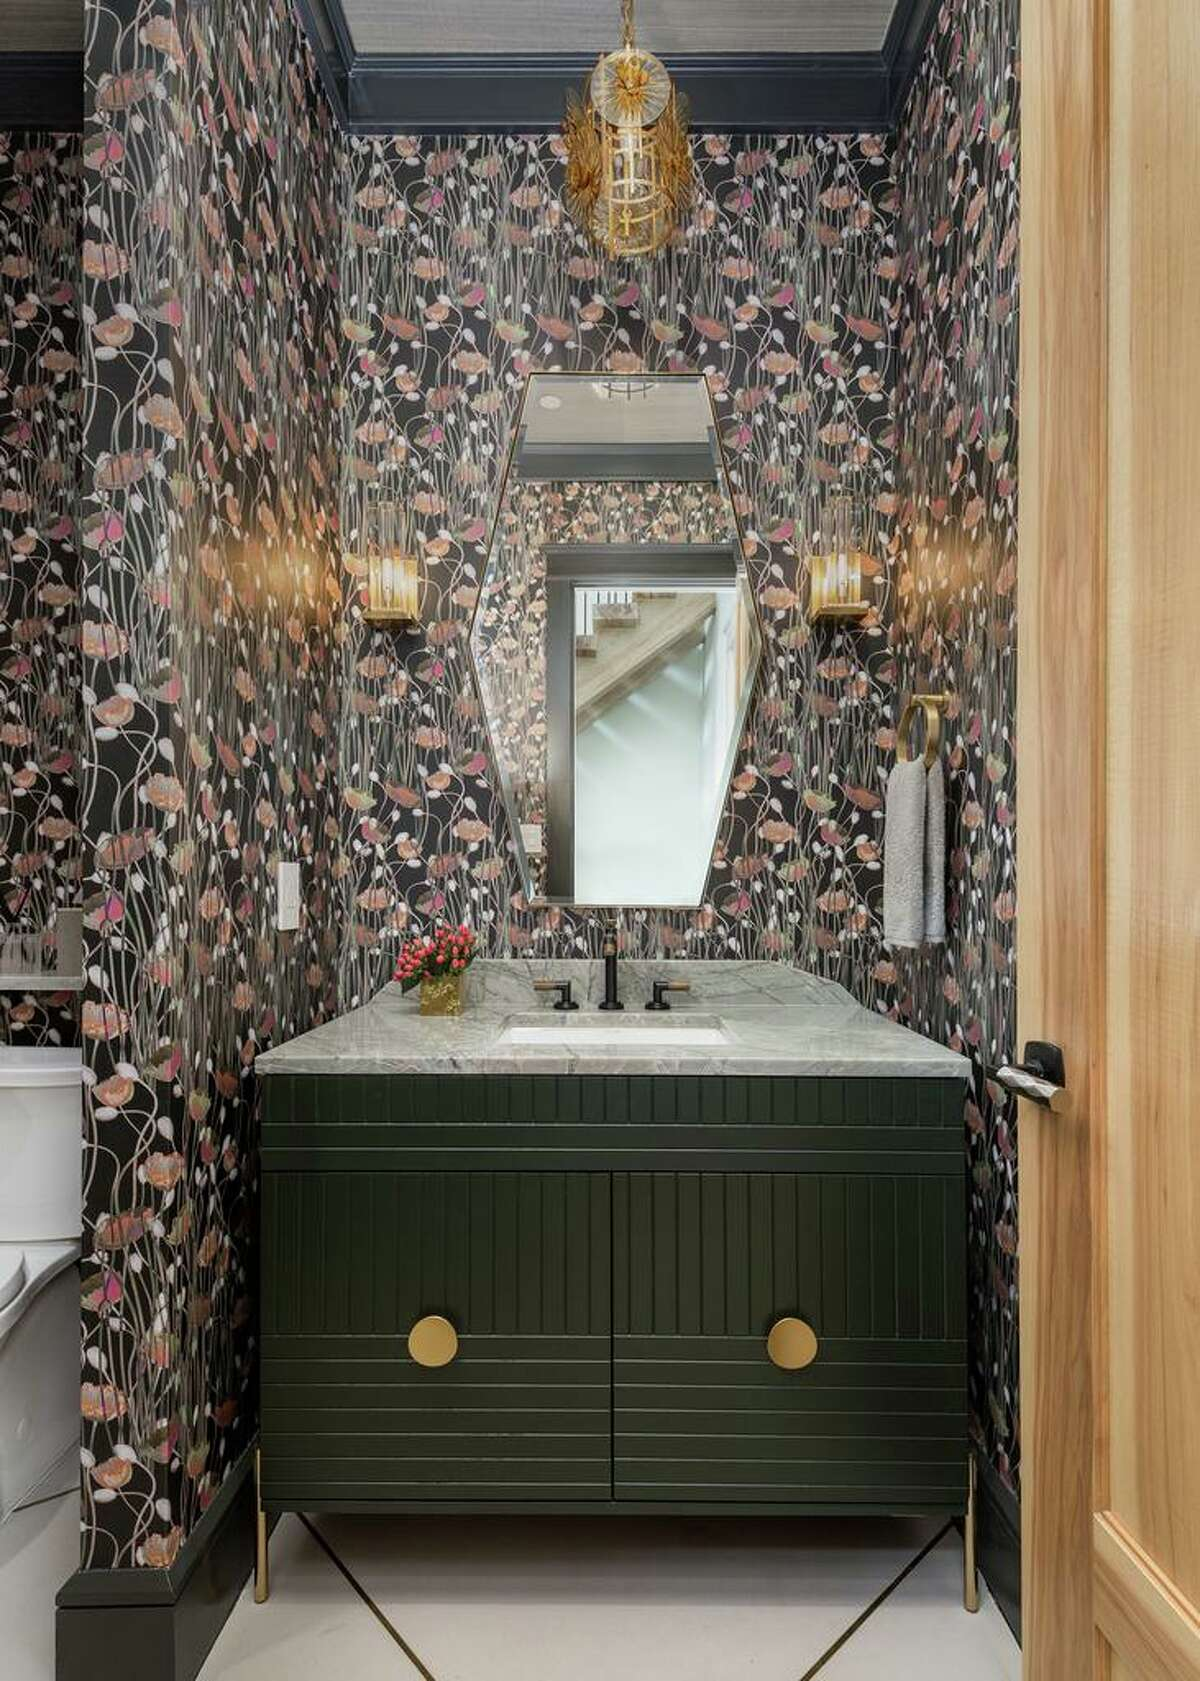 3. The details: Getting a bathroom right isn't about any one thing - it's about getting all of the details right. In her own powder bathroom interior designer Laura Manchee (Laura Manchee Designs) coordinated bold wallpaper with beautiful lighting, great hardware and visually interesting flooring.